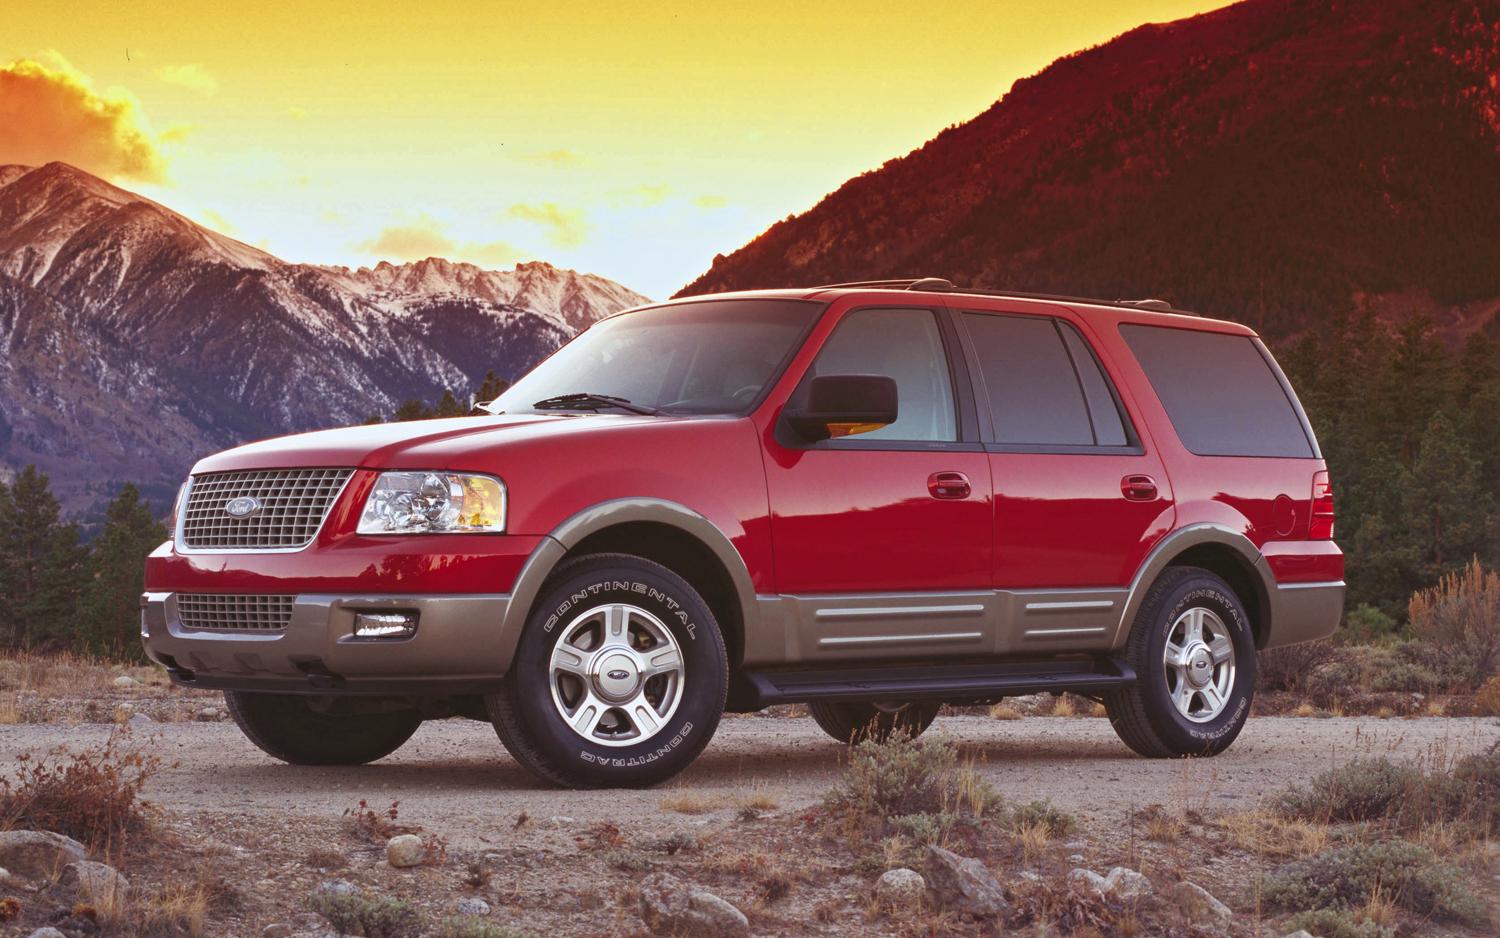 Pre-Owned: 2003-2006 Ford Expedition Photo & Image Gallery